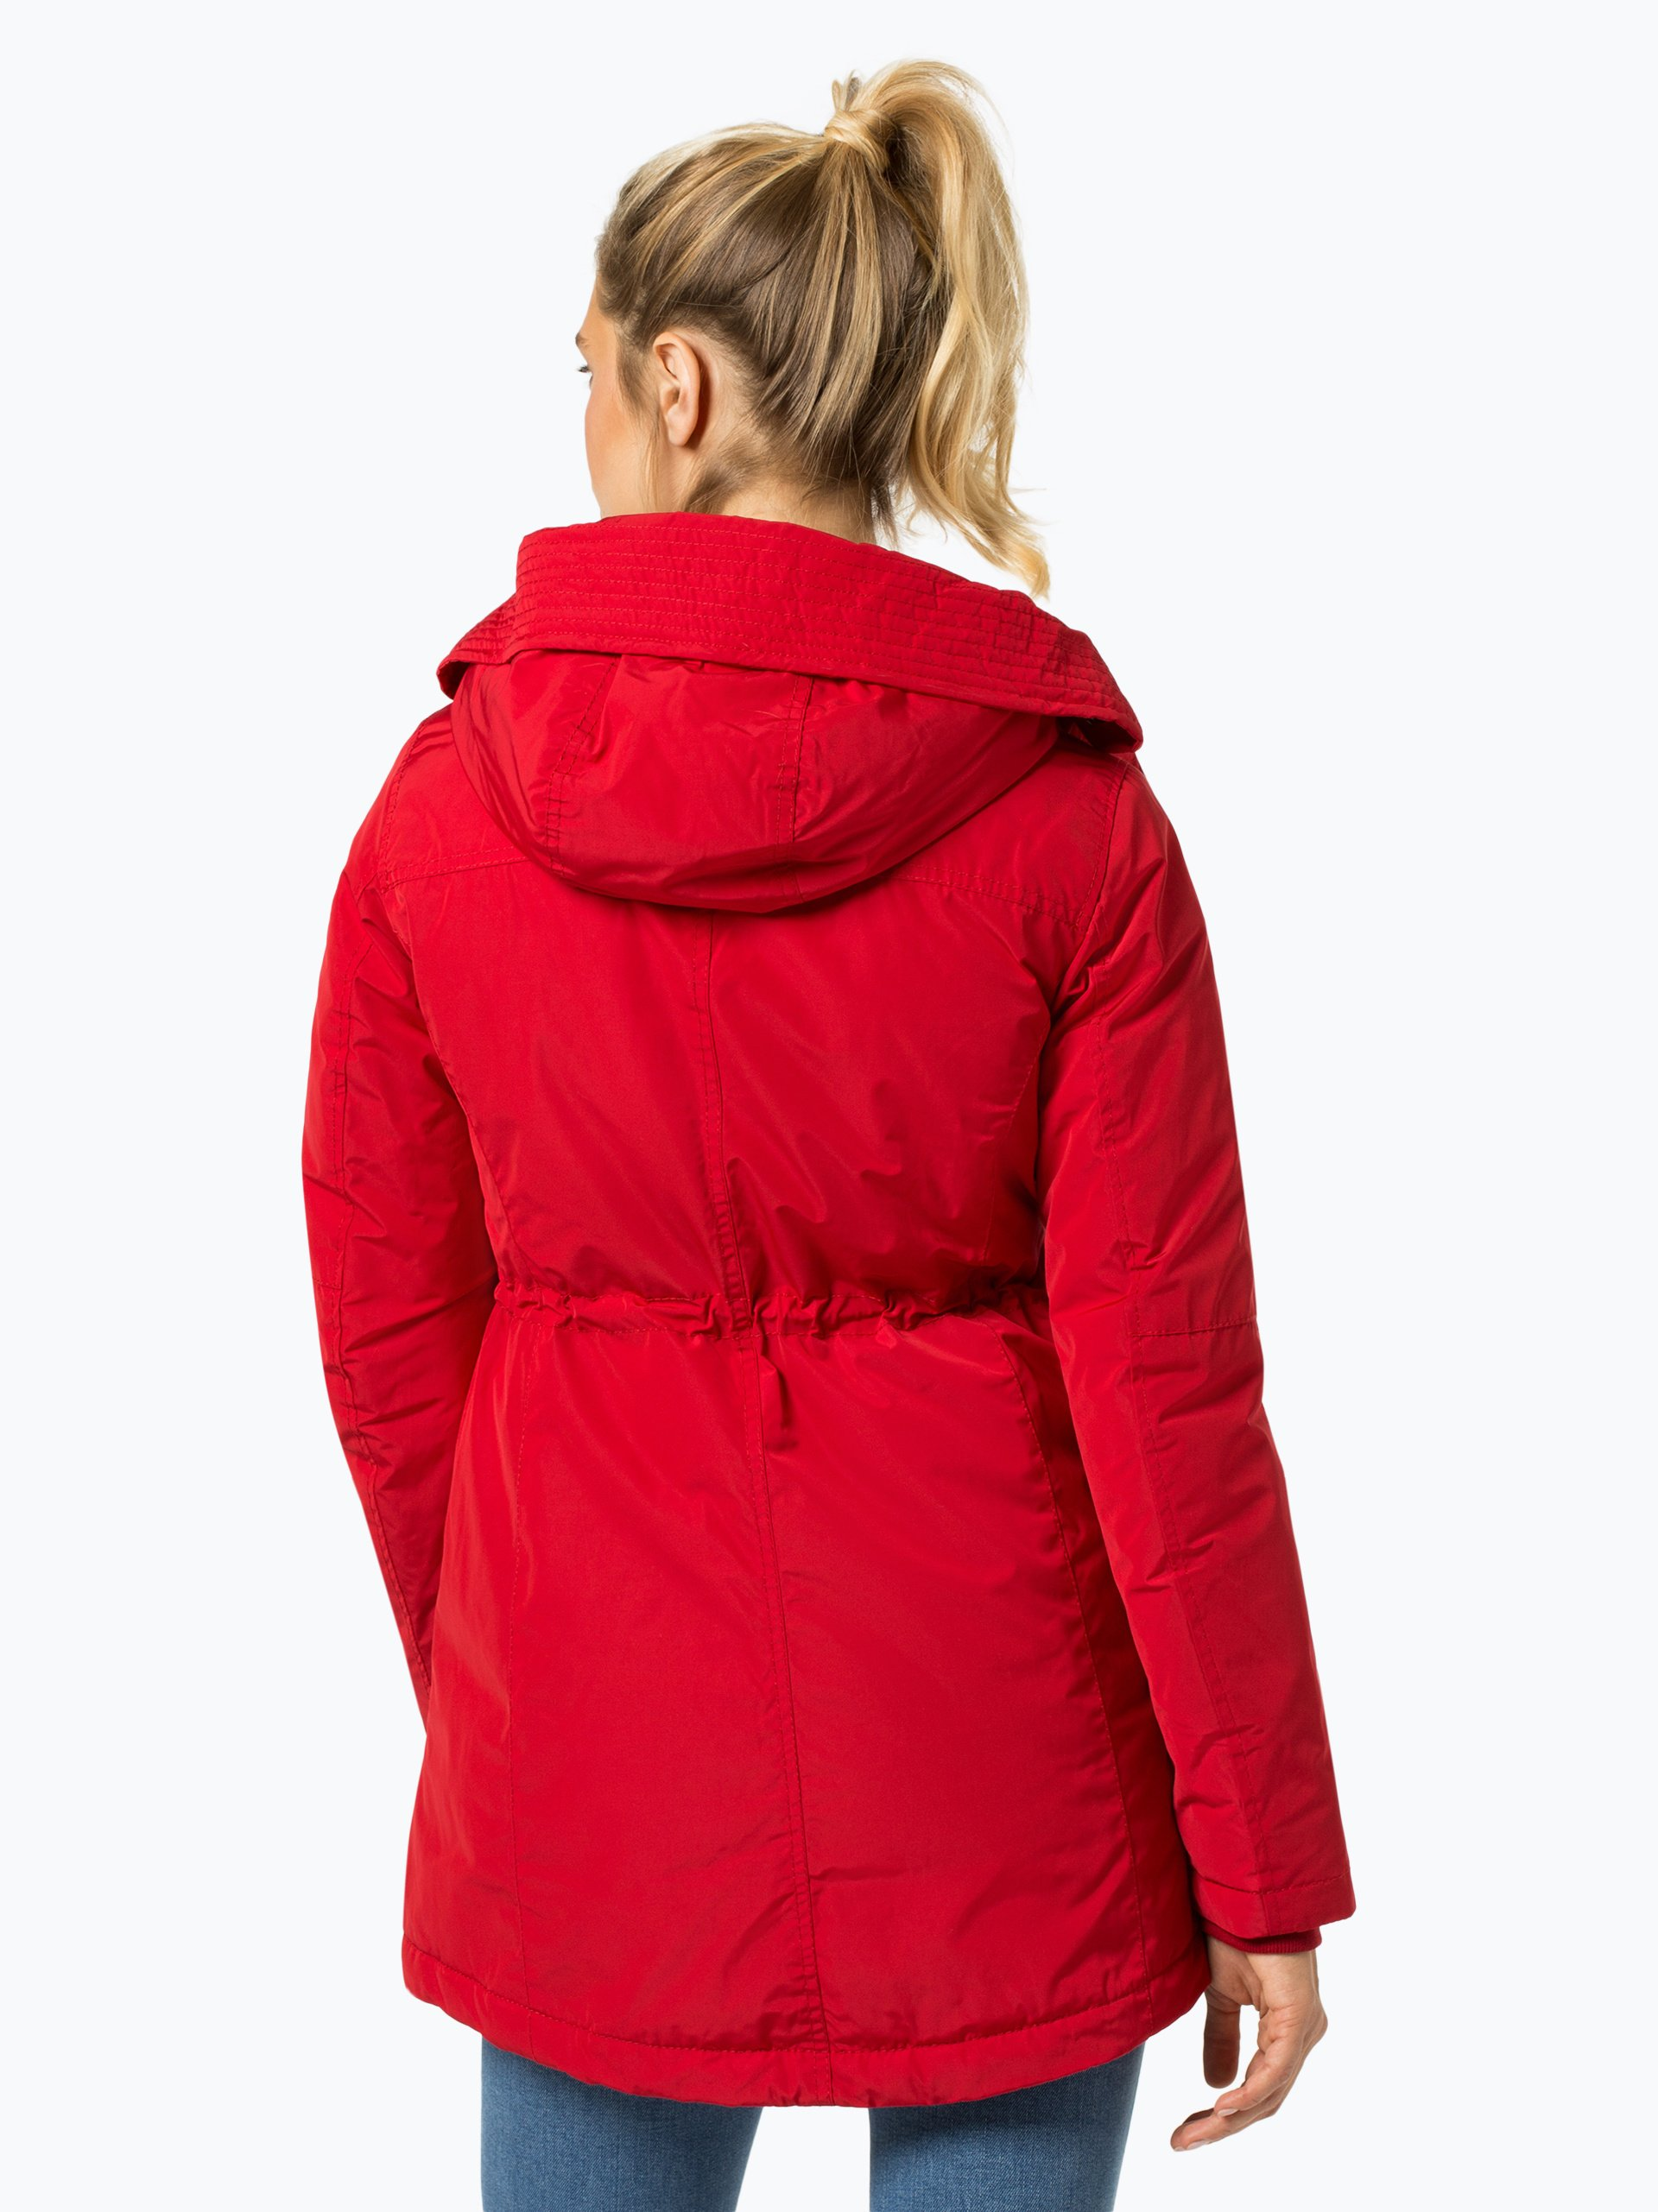 Camel Active Damen Funktionsjacke